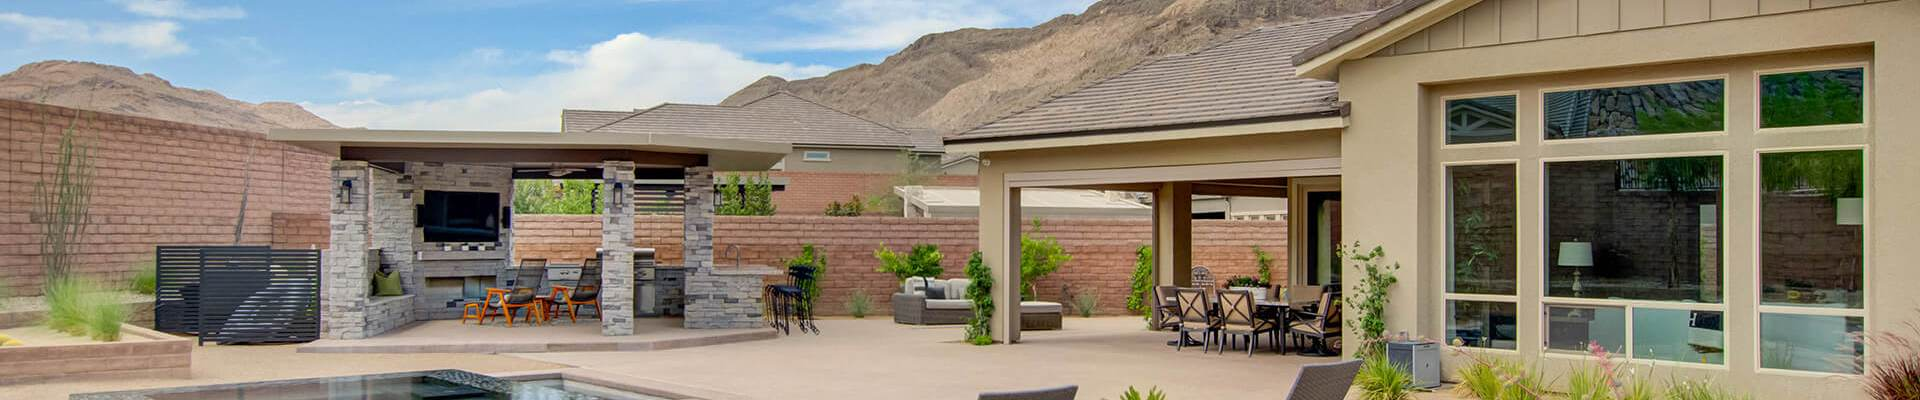 Custom Outdoor Living - Custom Outdoor Kitchen and Living Area Design and Construction